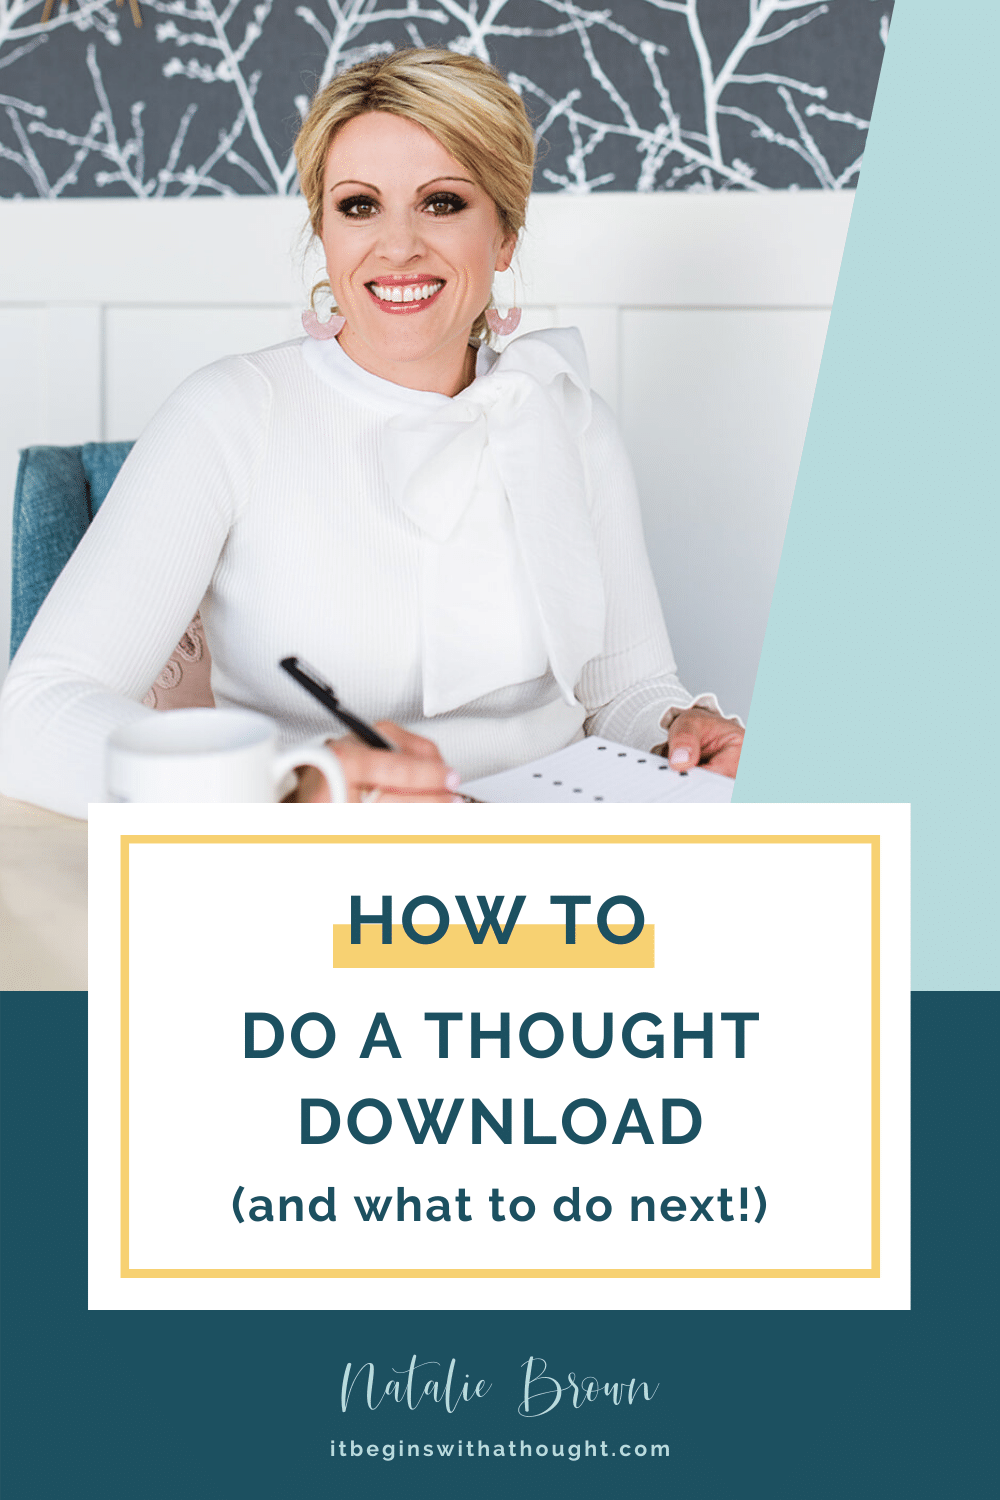 How to do a thought download (and what to do next!)